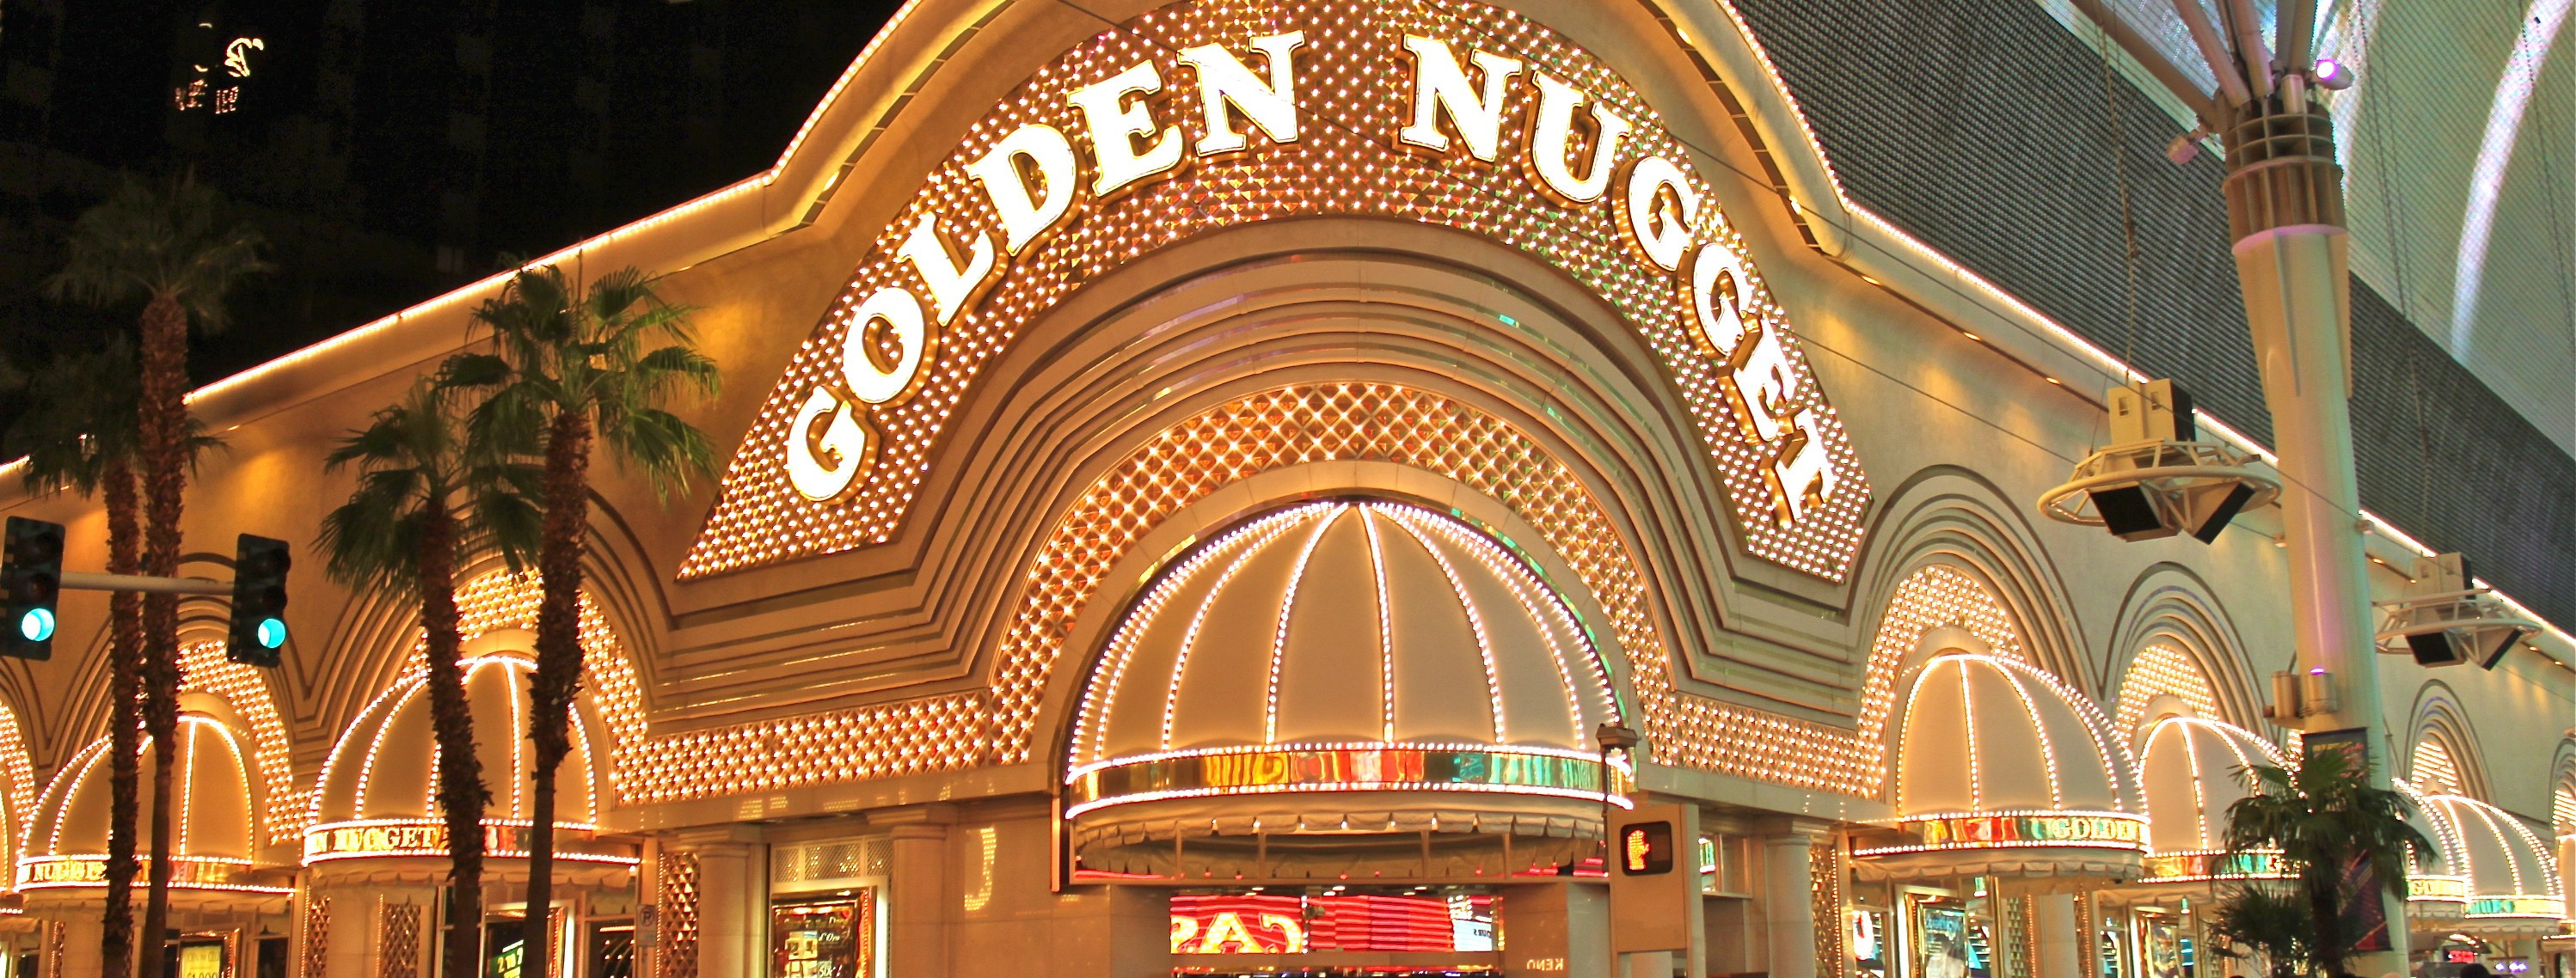 golden-nugget